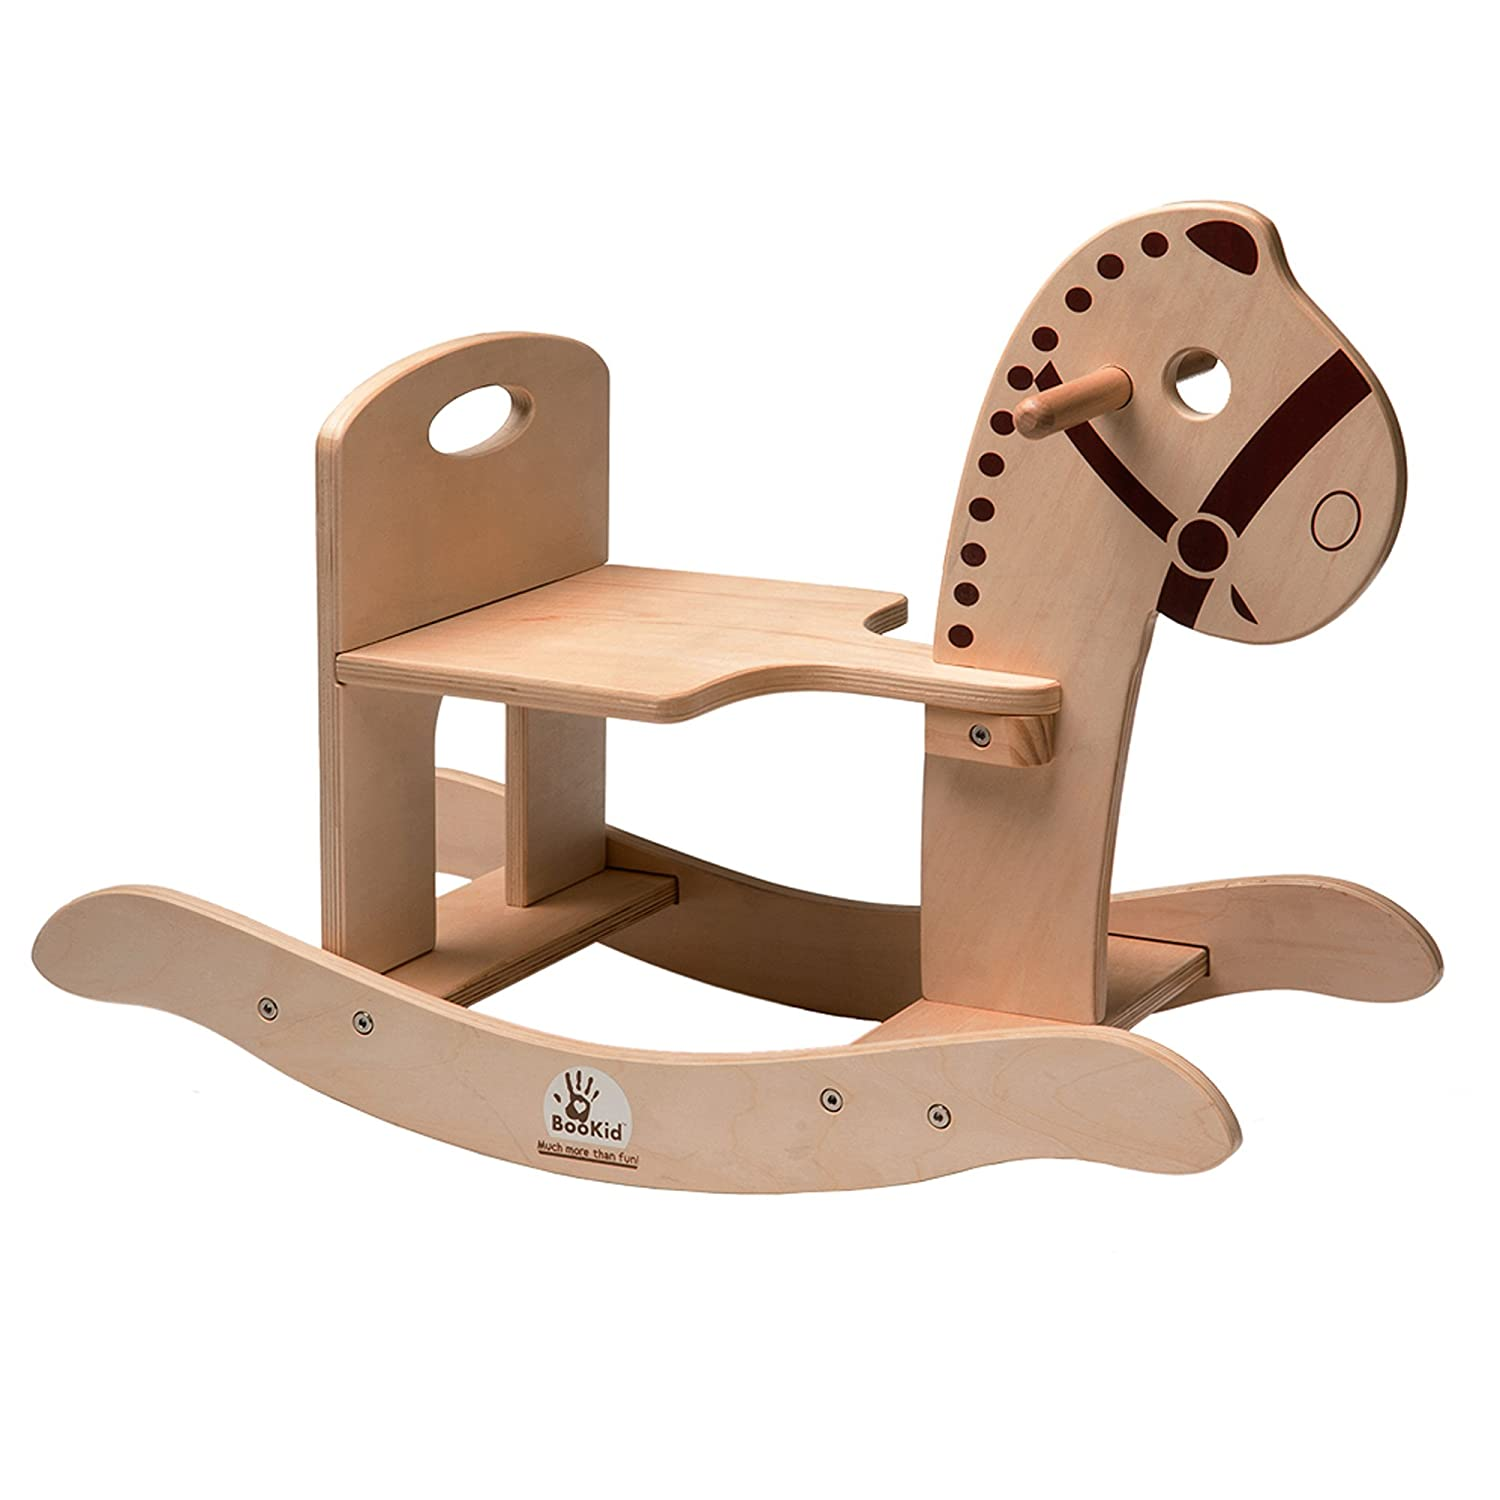 BooKid Durable and Colorful Wooden Rocking Horse Toy for Toddlers